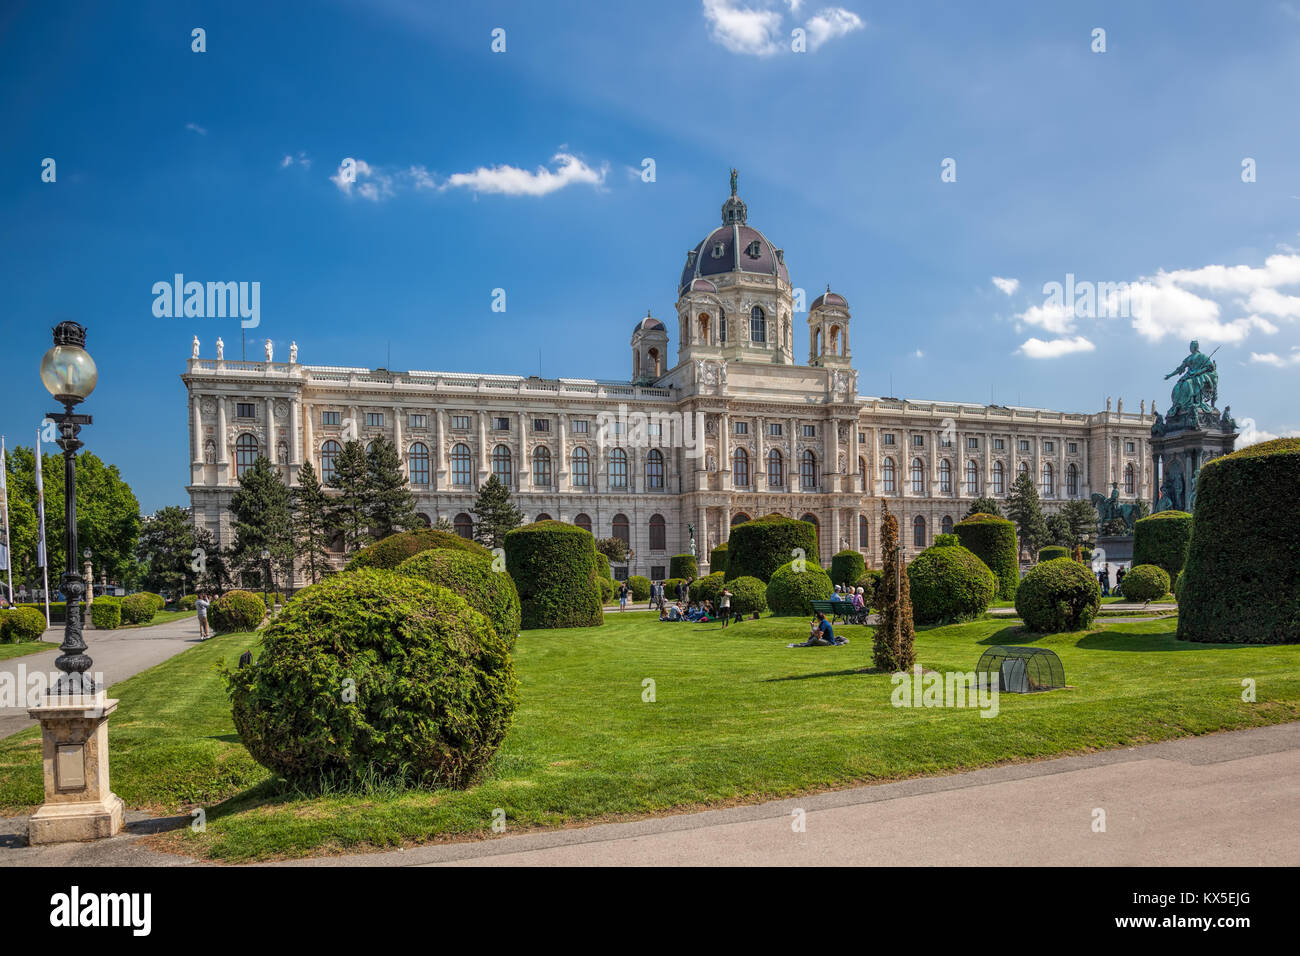 Naturhistorisches Museum (Natural History Museum) with park and sculpture in Vienna, Austria Stock Photo